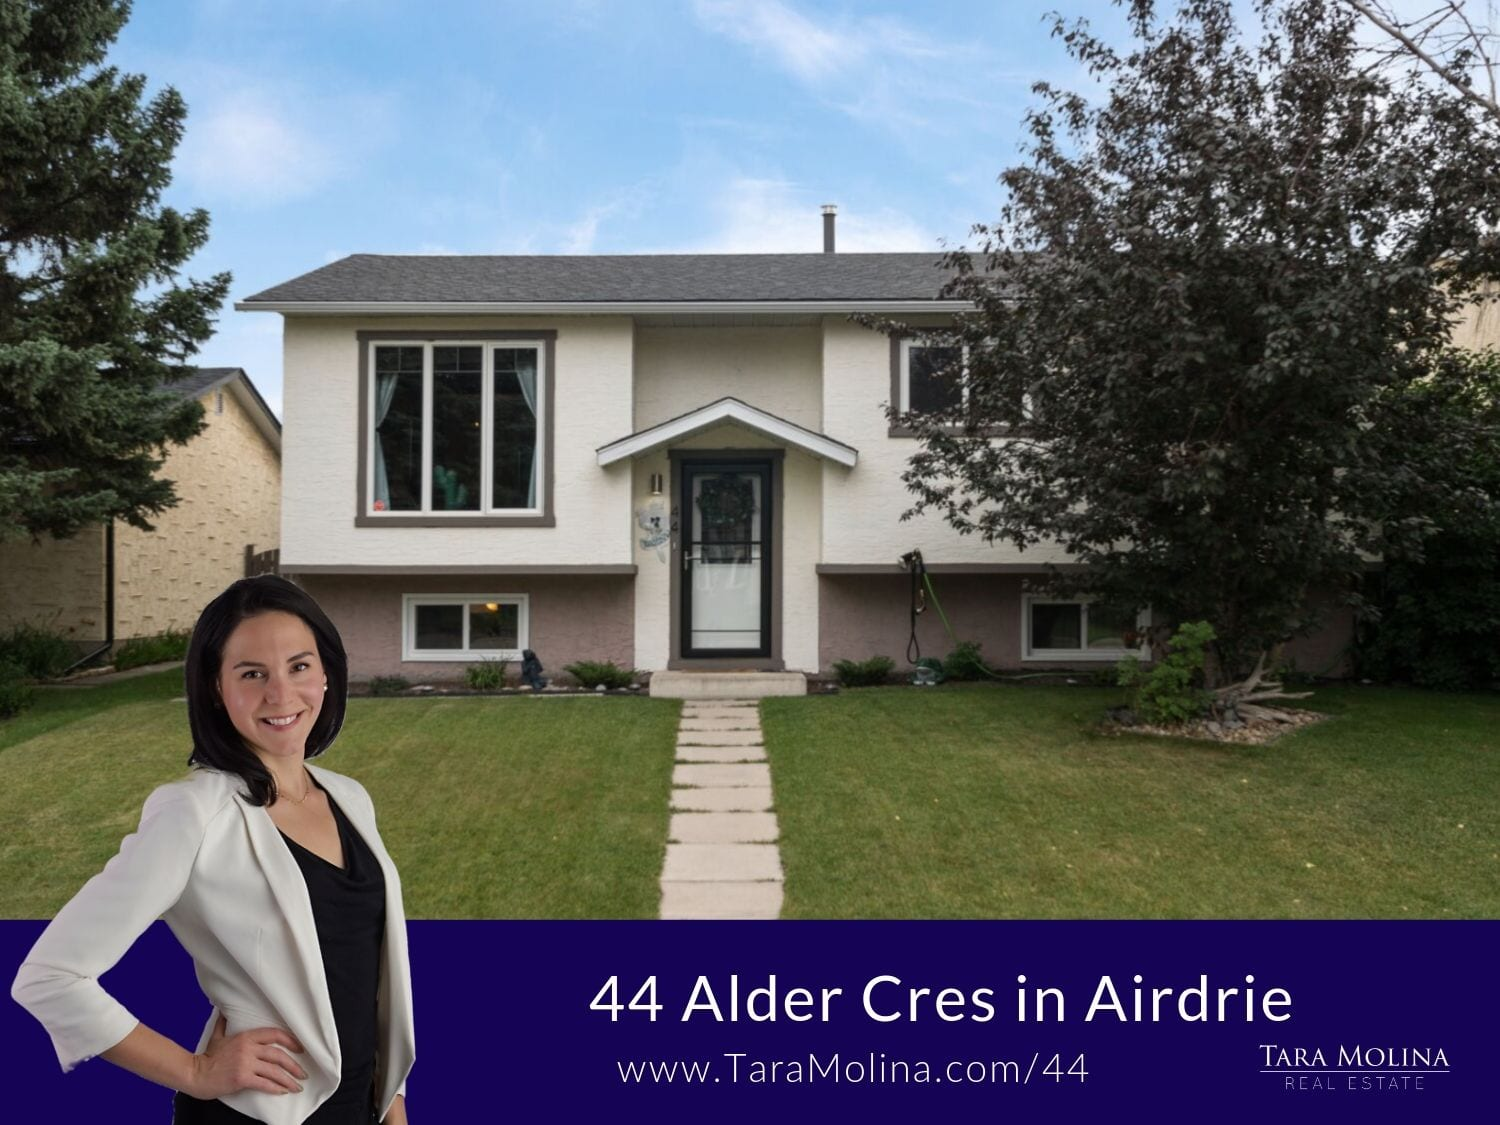 44 Alder Cres in Airdrie - Tara Molina Real Estate